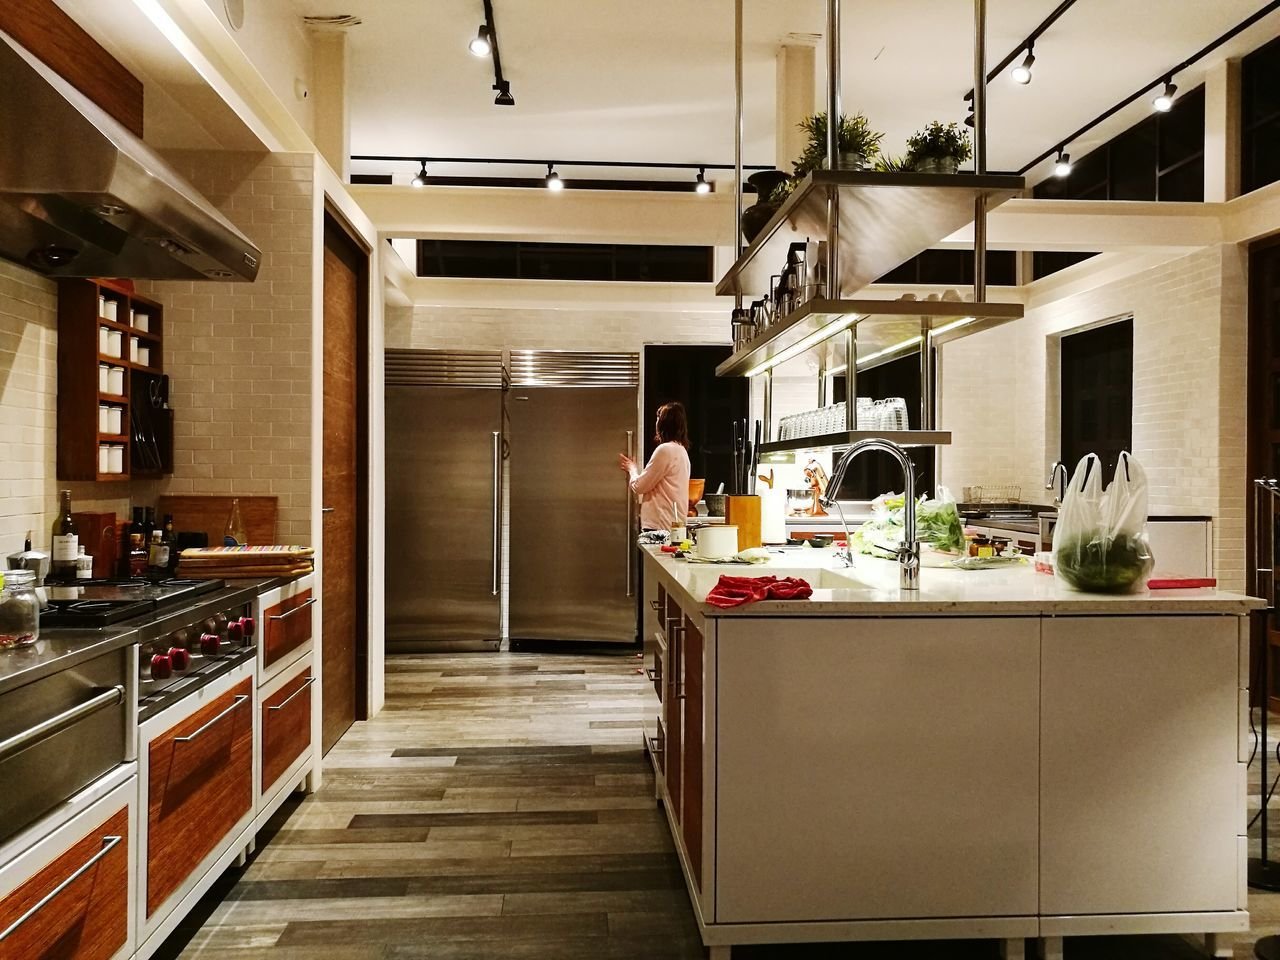 domestic kitchen, kitchen, kitchen counter, indoors, food and drink, domestic room, food, cabinet, home showcase interior, day, flower, no people